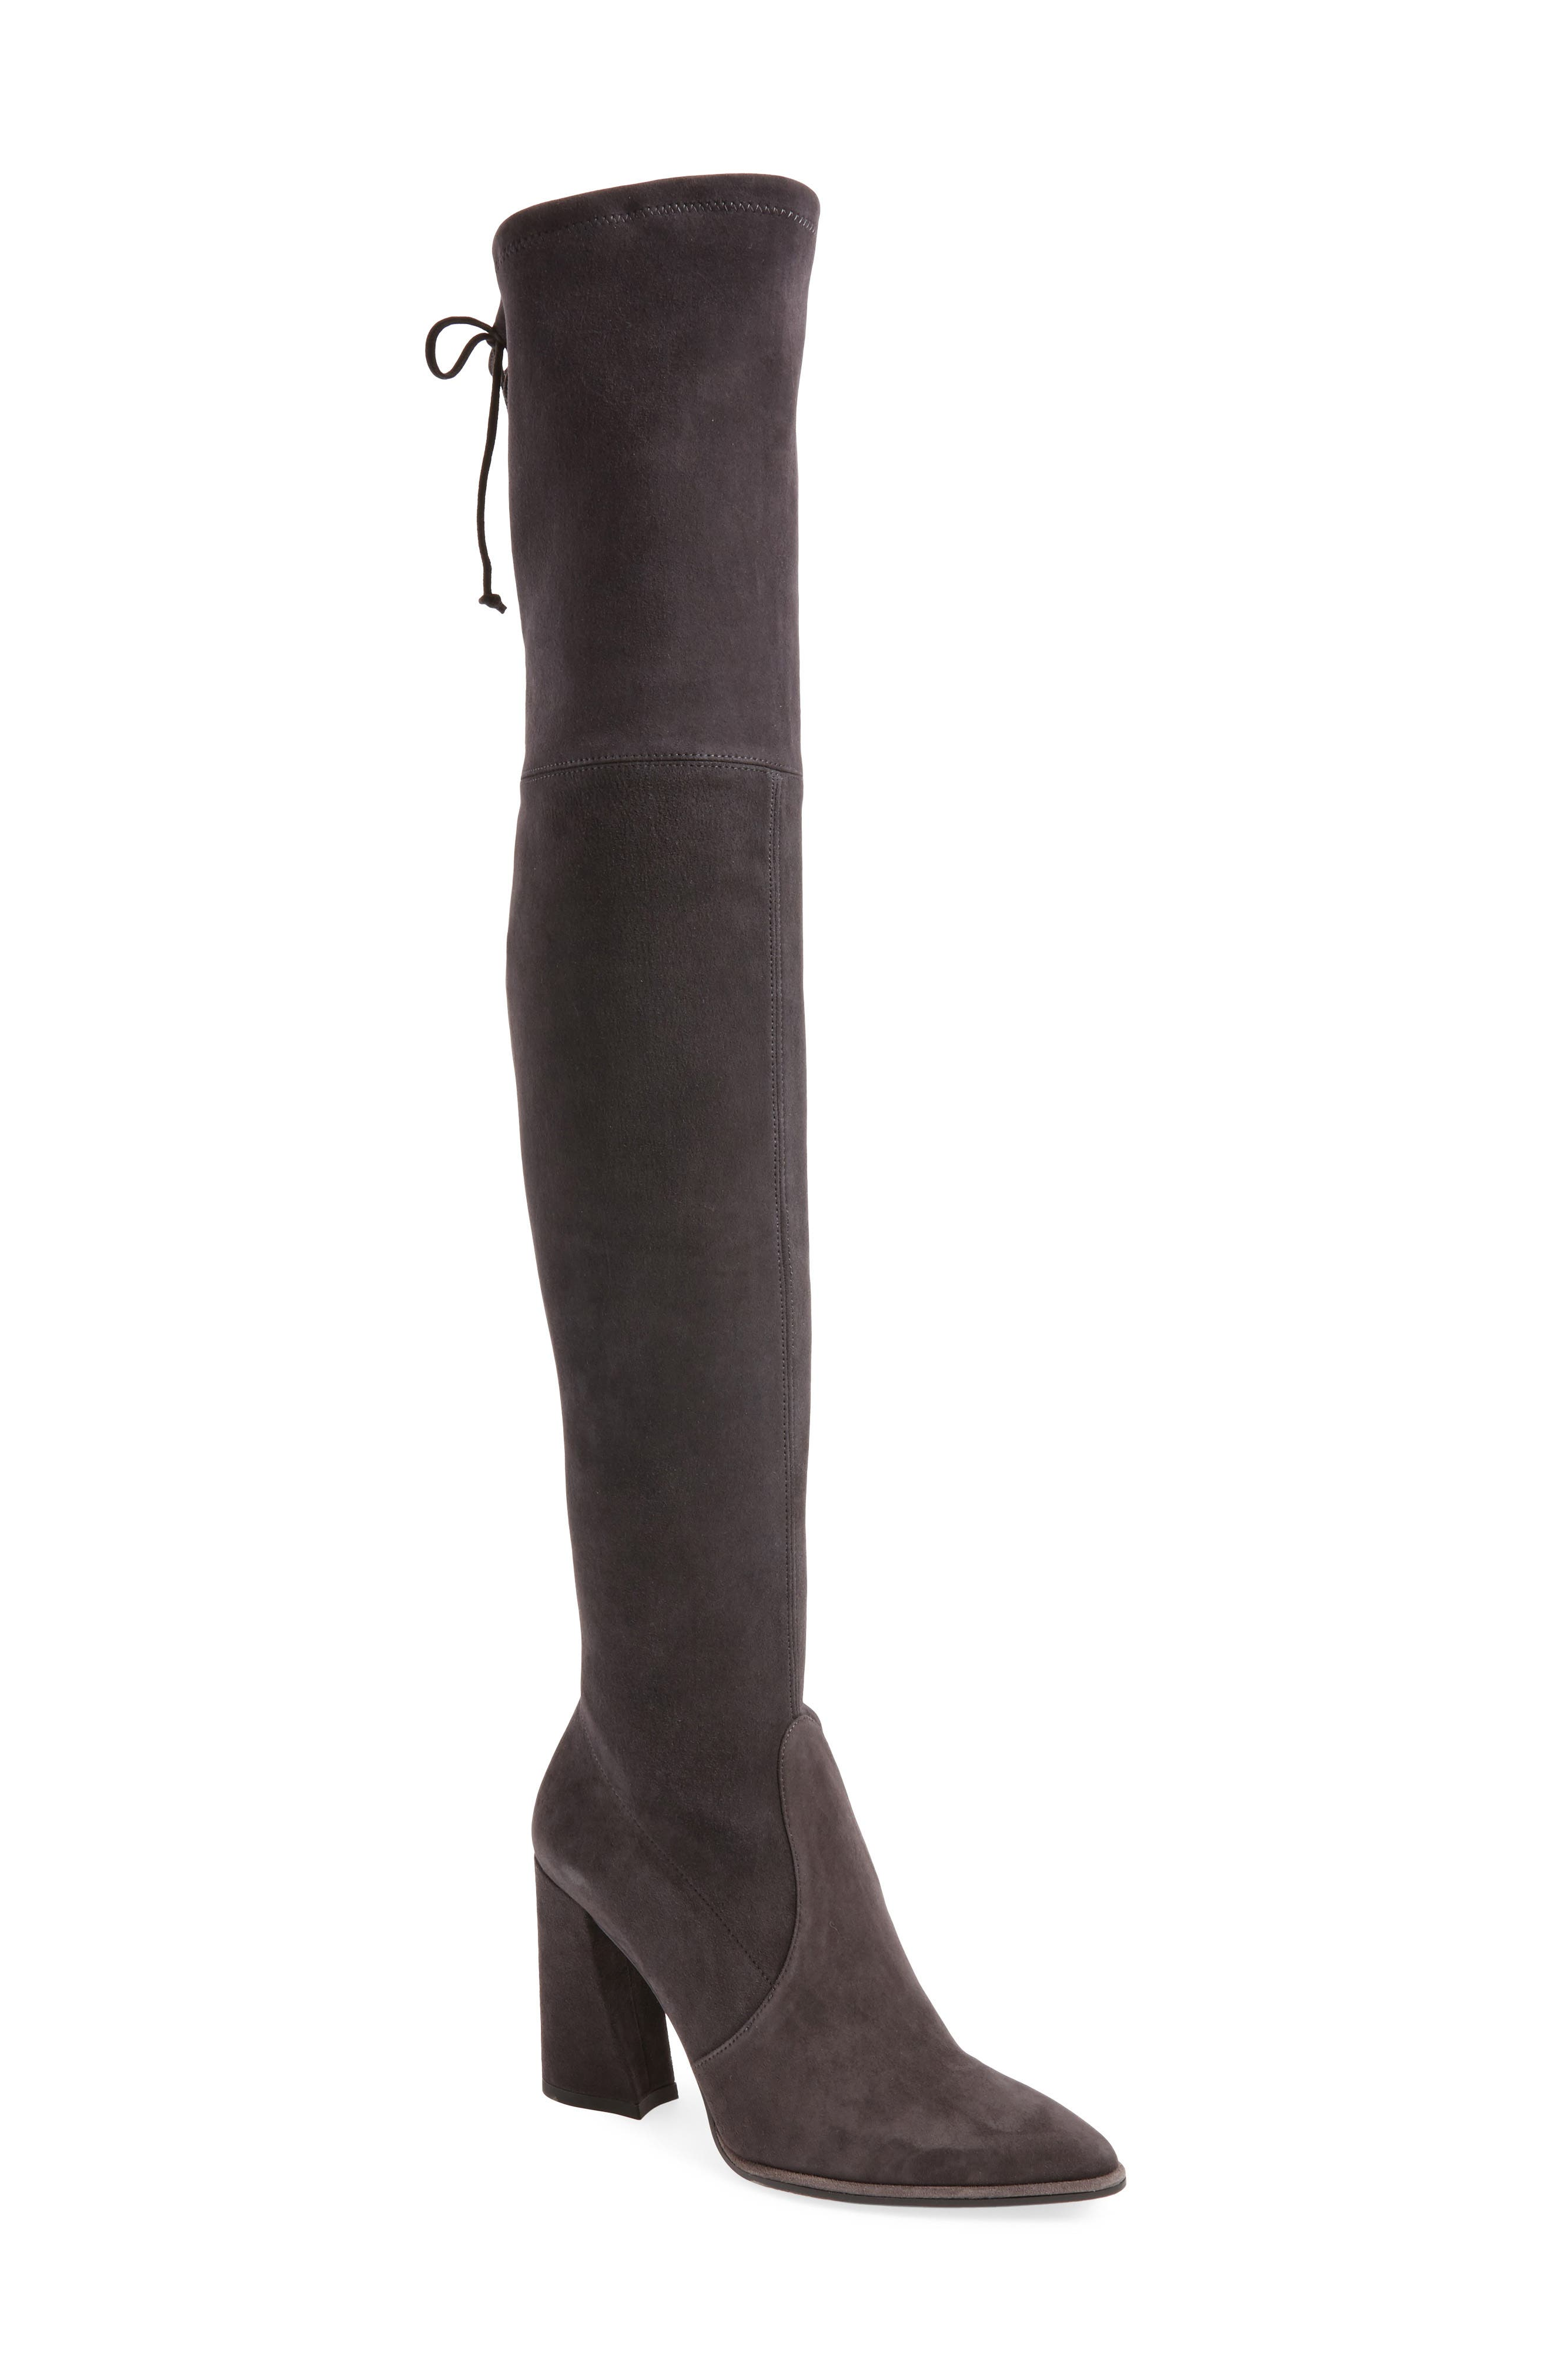 Funland Over the Knee Boot,                             Main thumbnail 1, color,                             Anthracite Suede